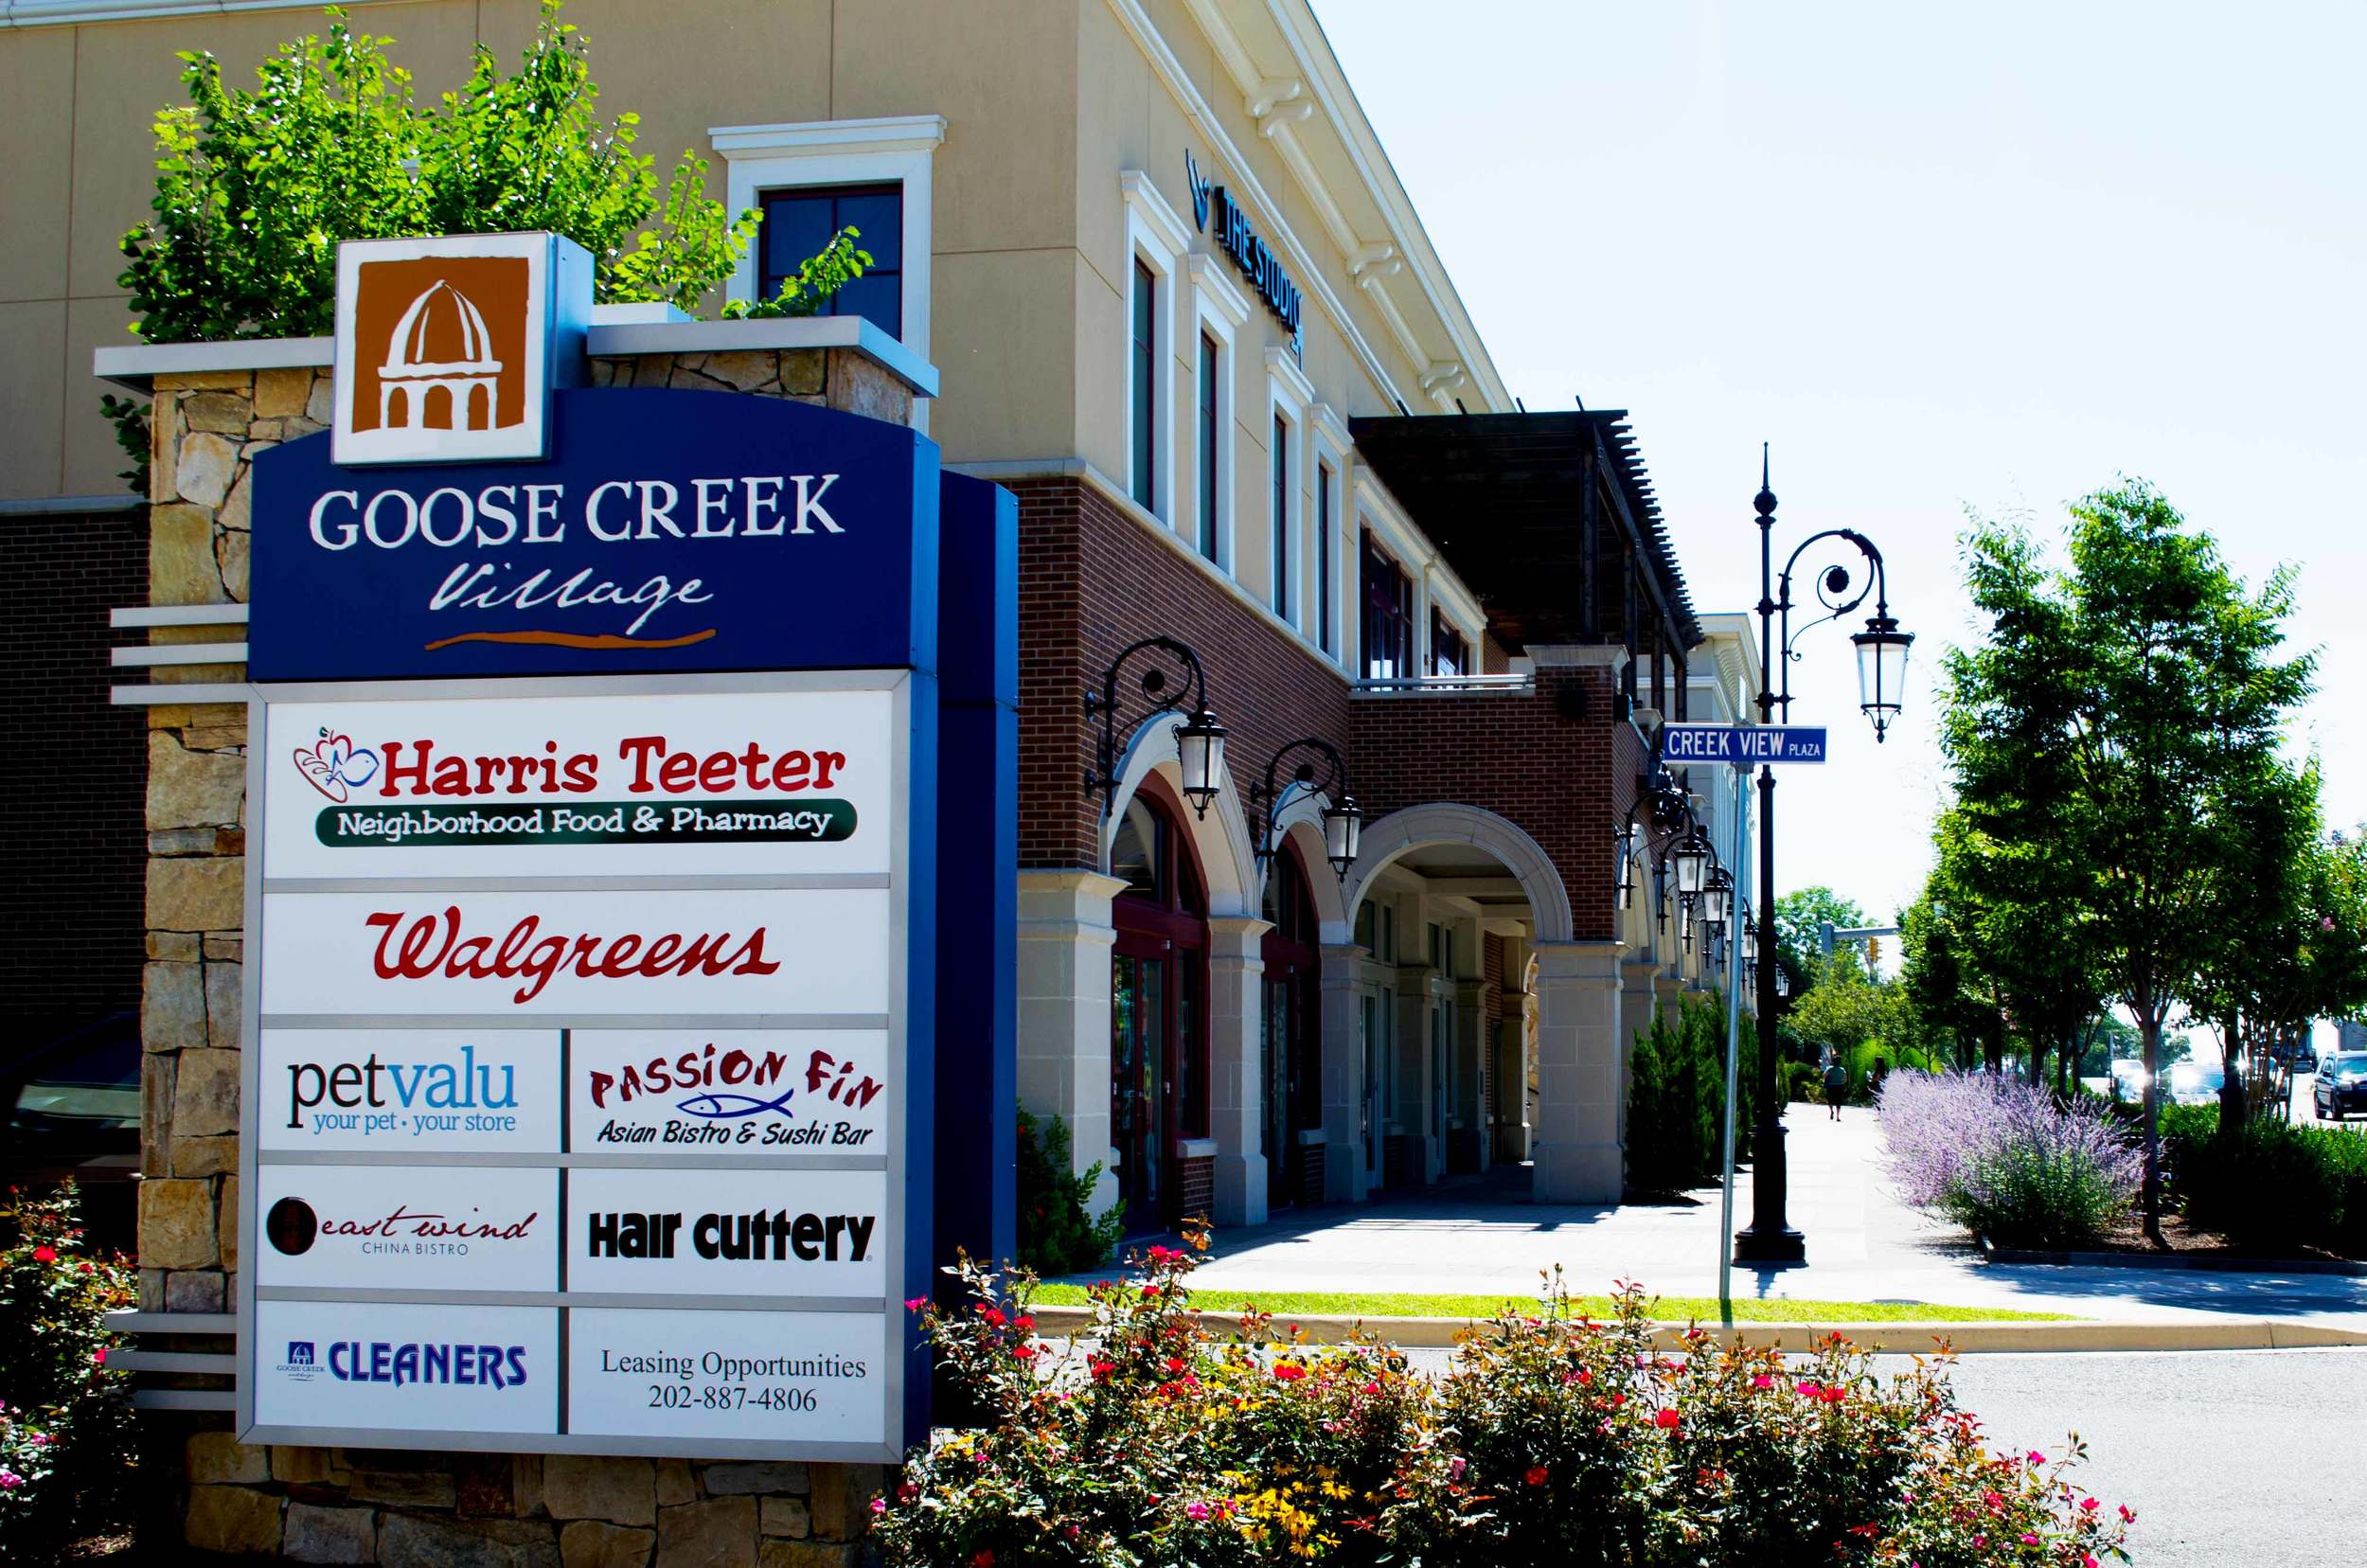 Goose Creek Village